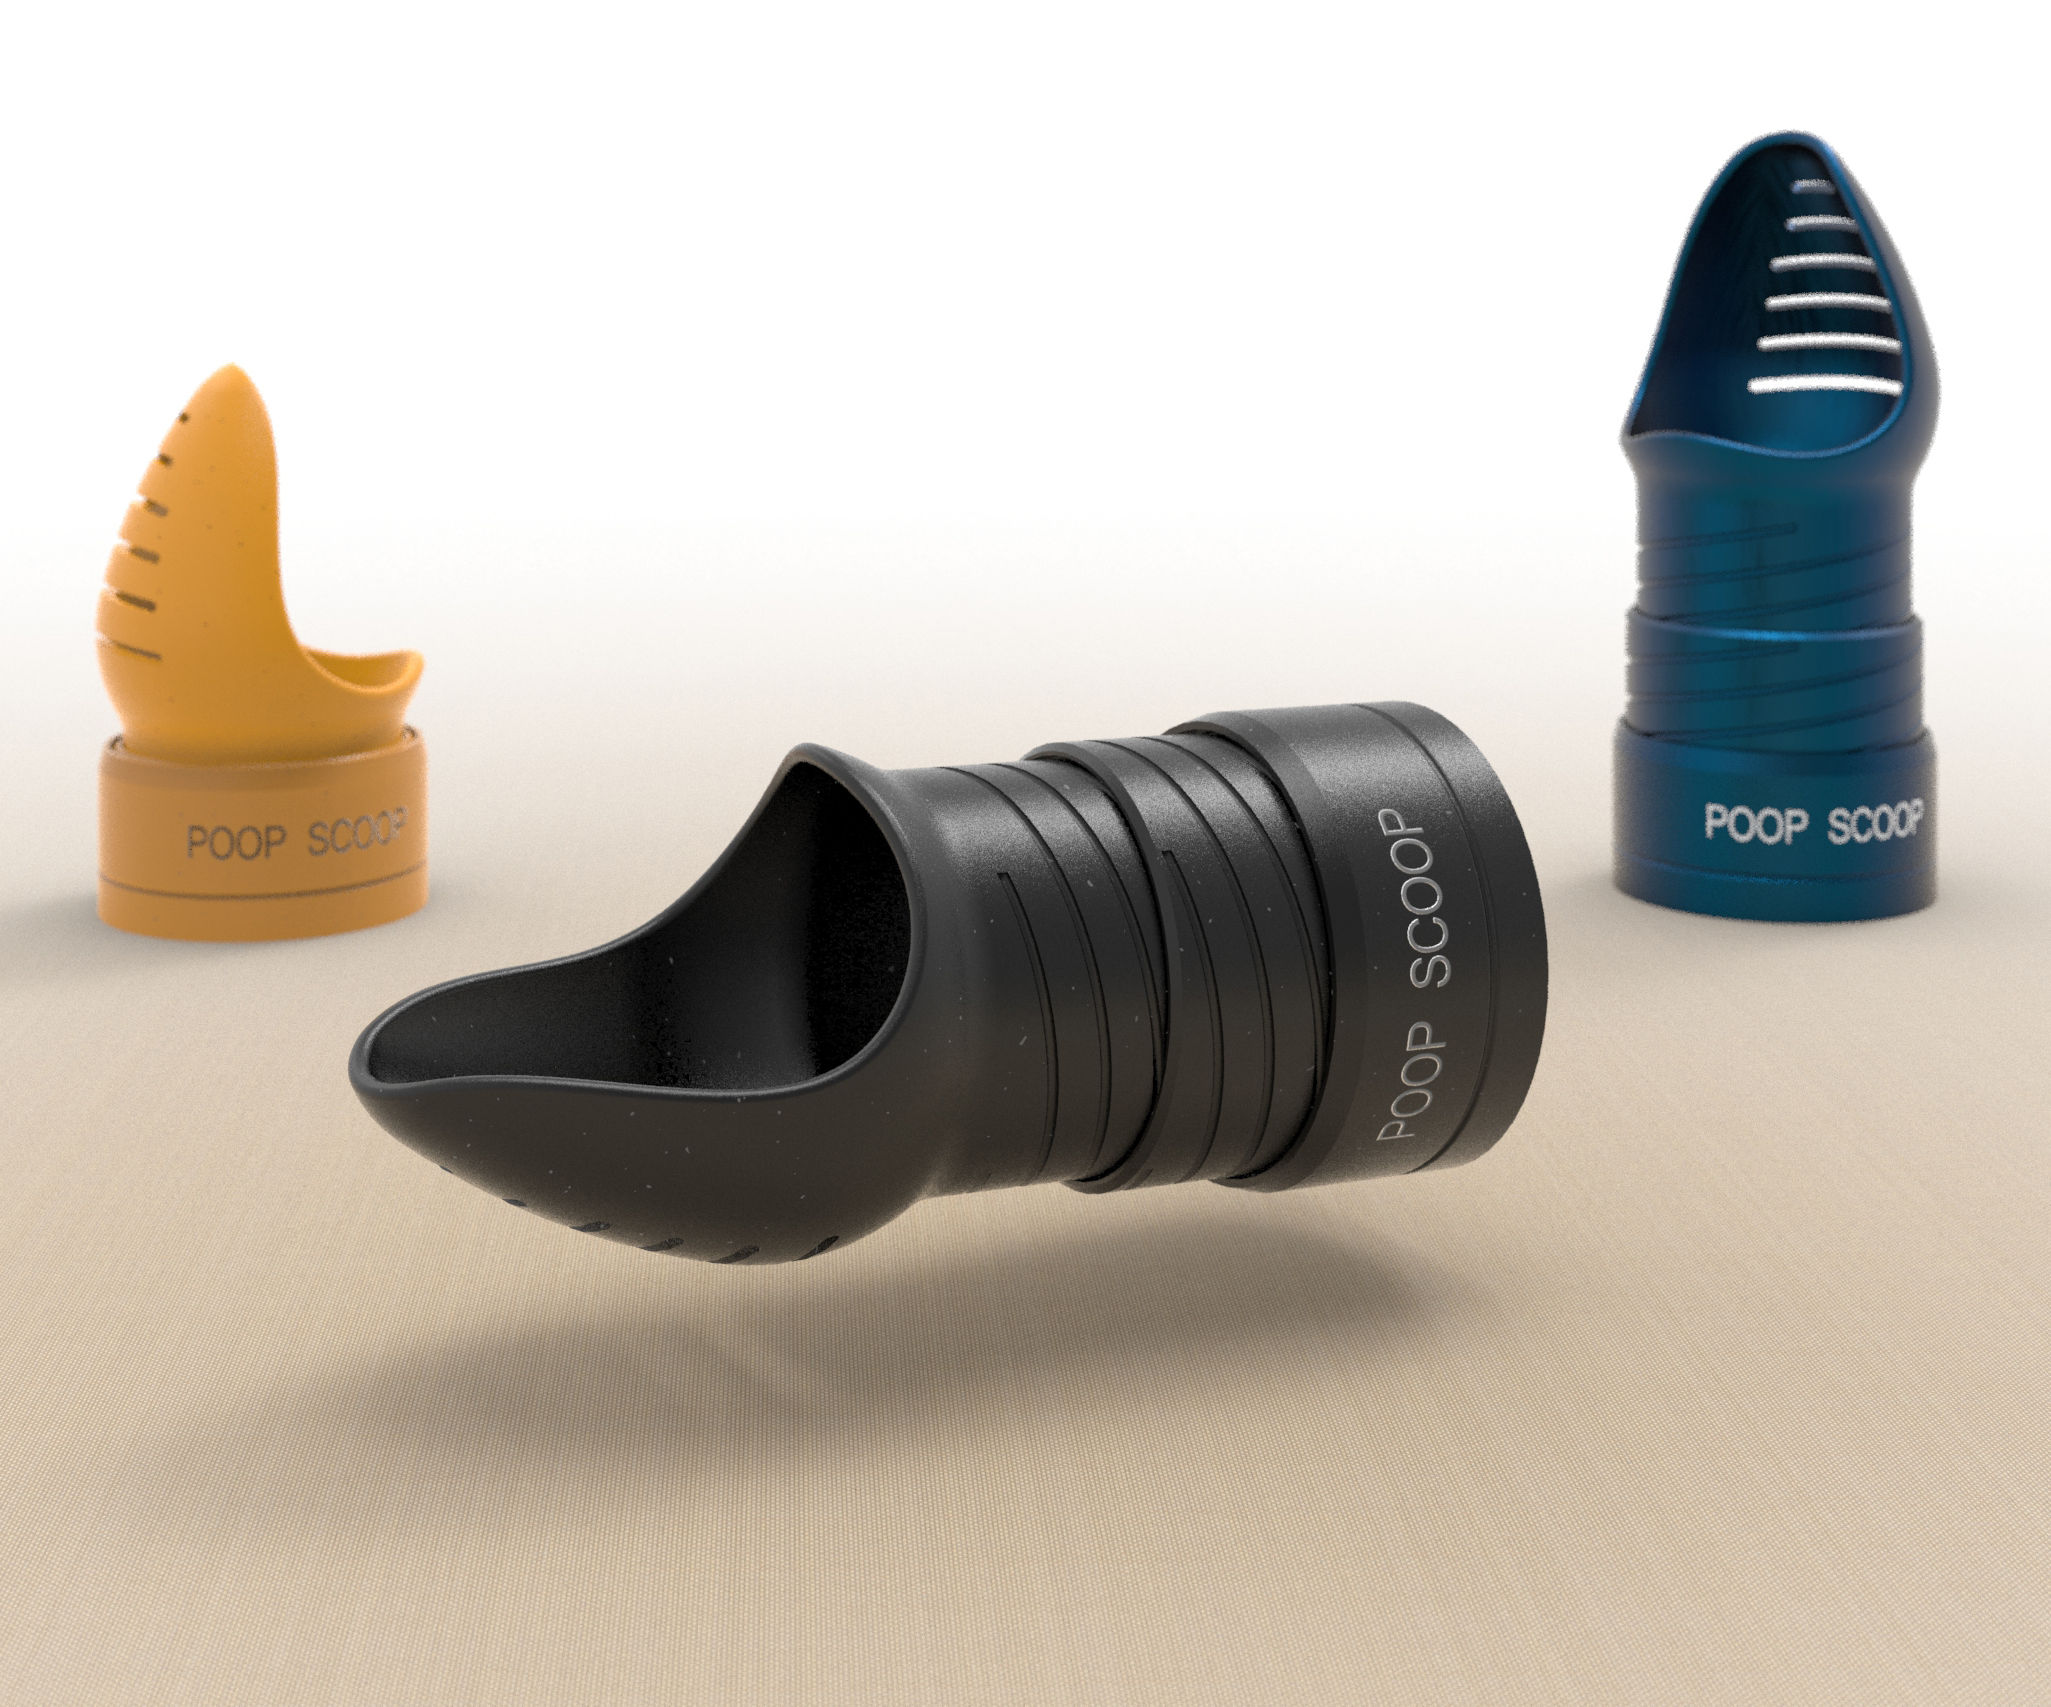 POOP SCOOP - a Compact and Handy Tool for All Types of Pets Owners